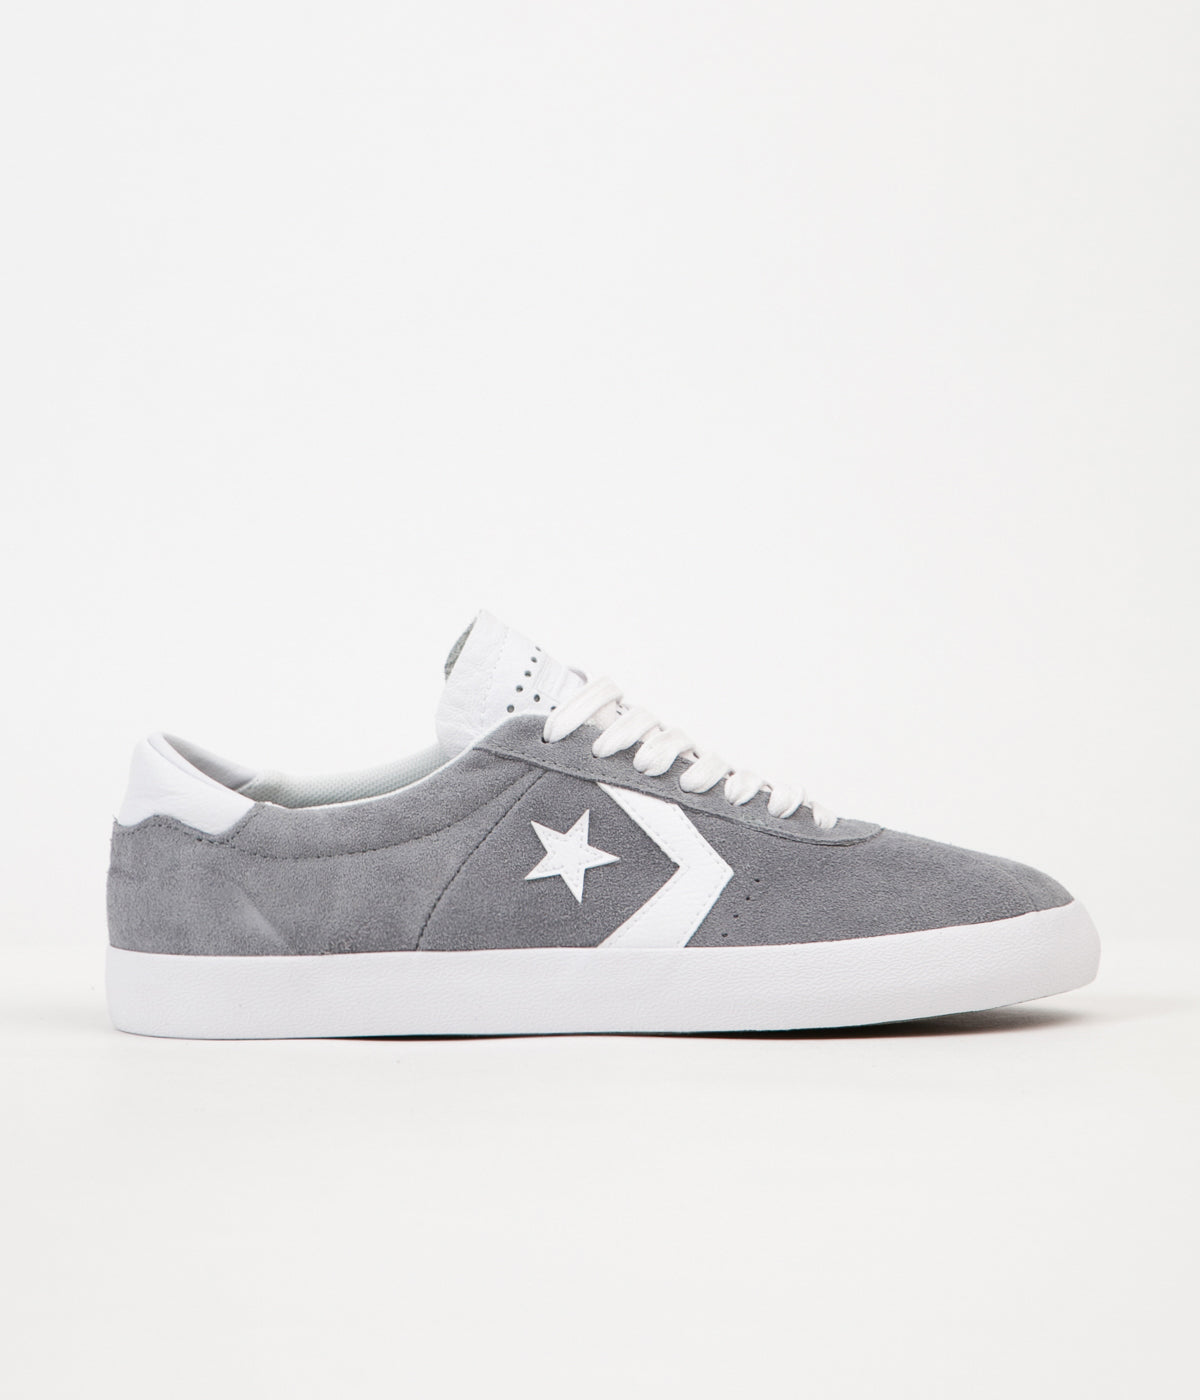 Converse Breakpoint Pro Ox Shoes - Cool Grey / White / White